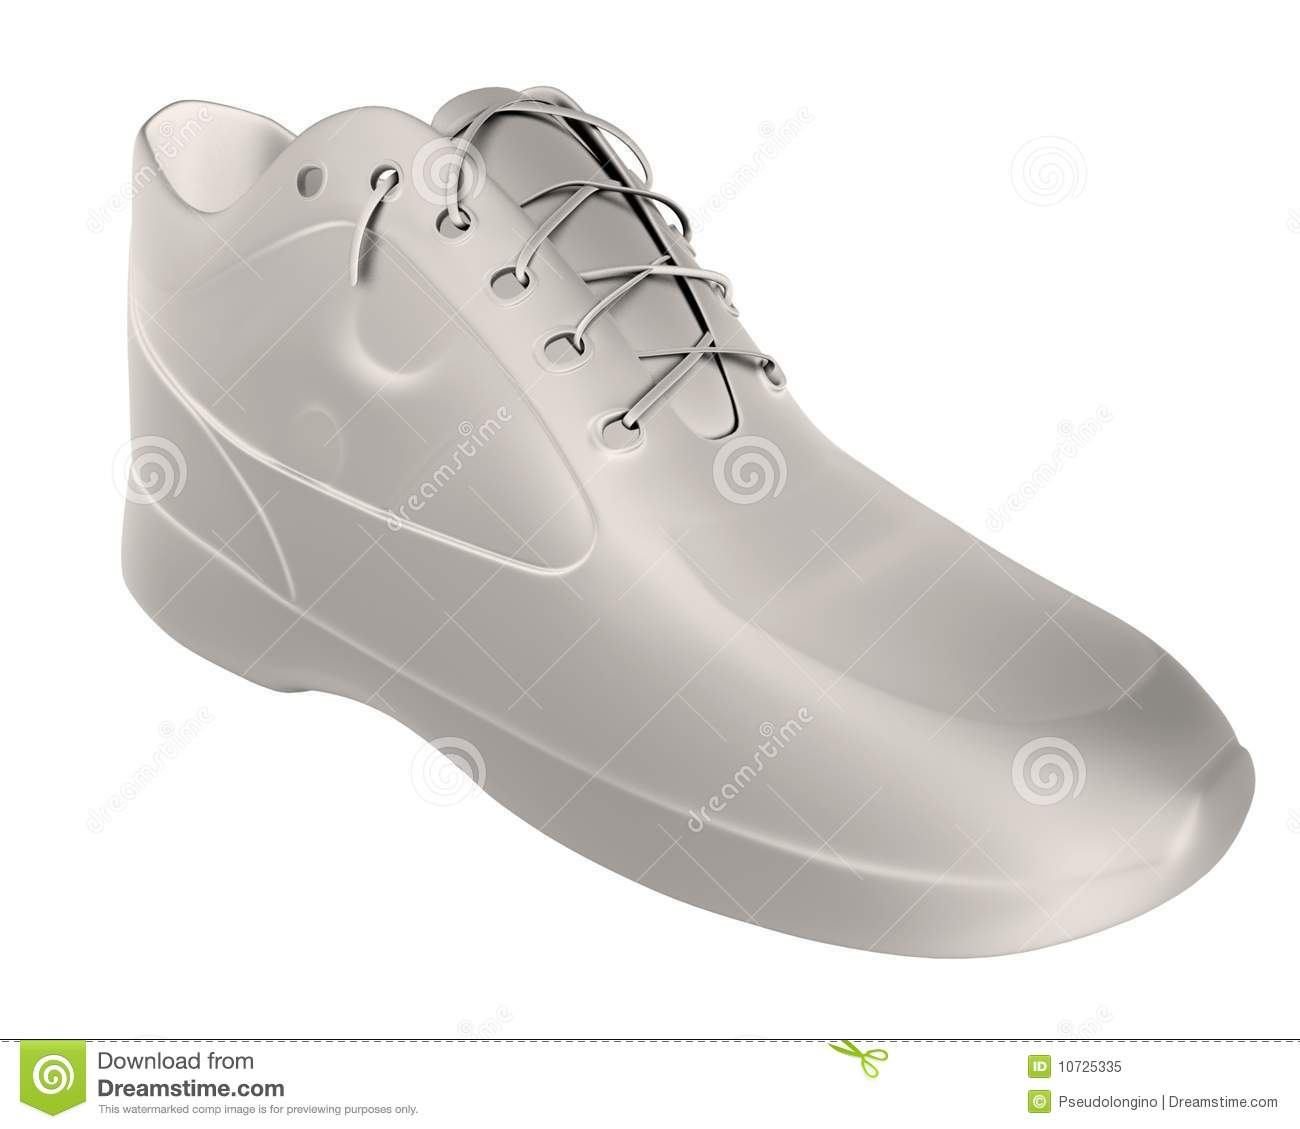 Shoe render stock illustration  Illustration of casual